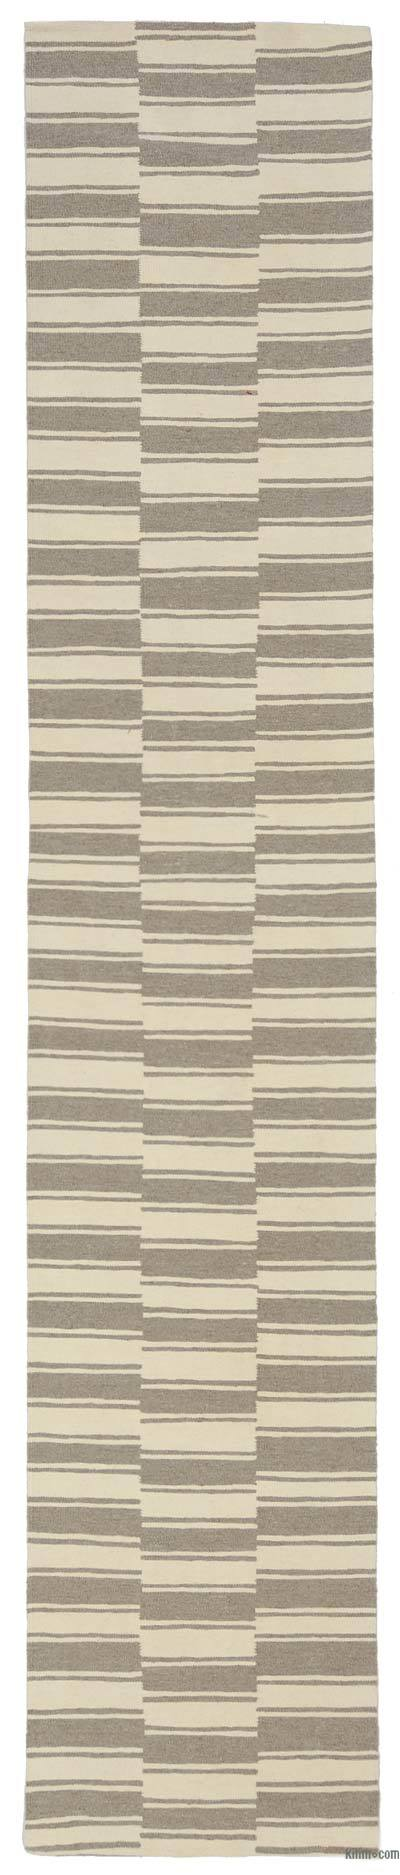 "New Turkish Kilim Runner - 2' 5"" x 12' 10"" (29 in. x 154 in.)"